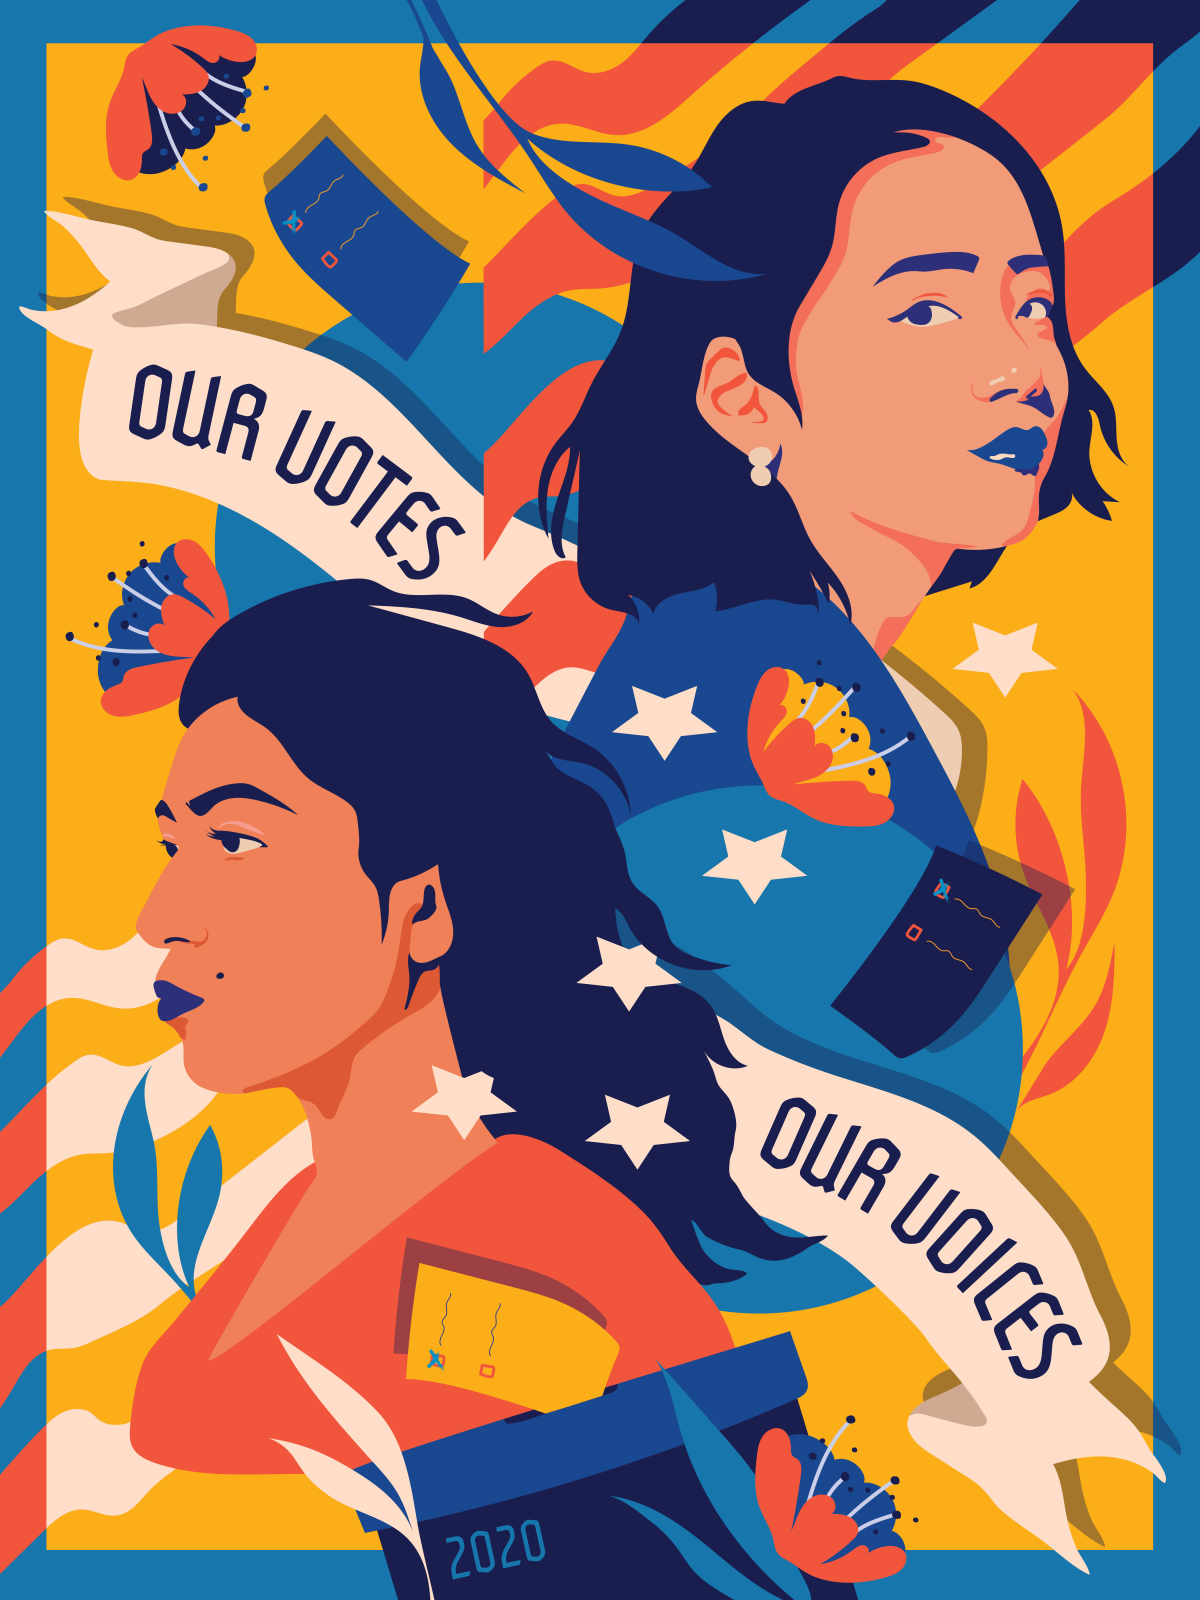 Our Votes, Our Voices